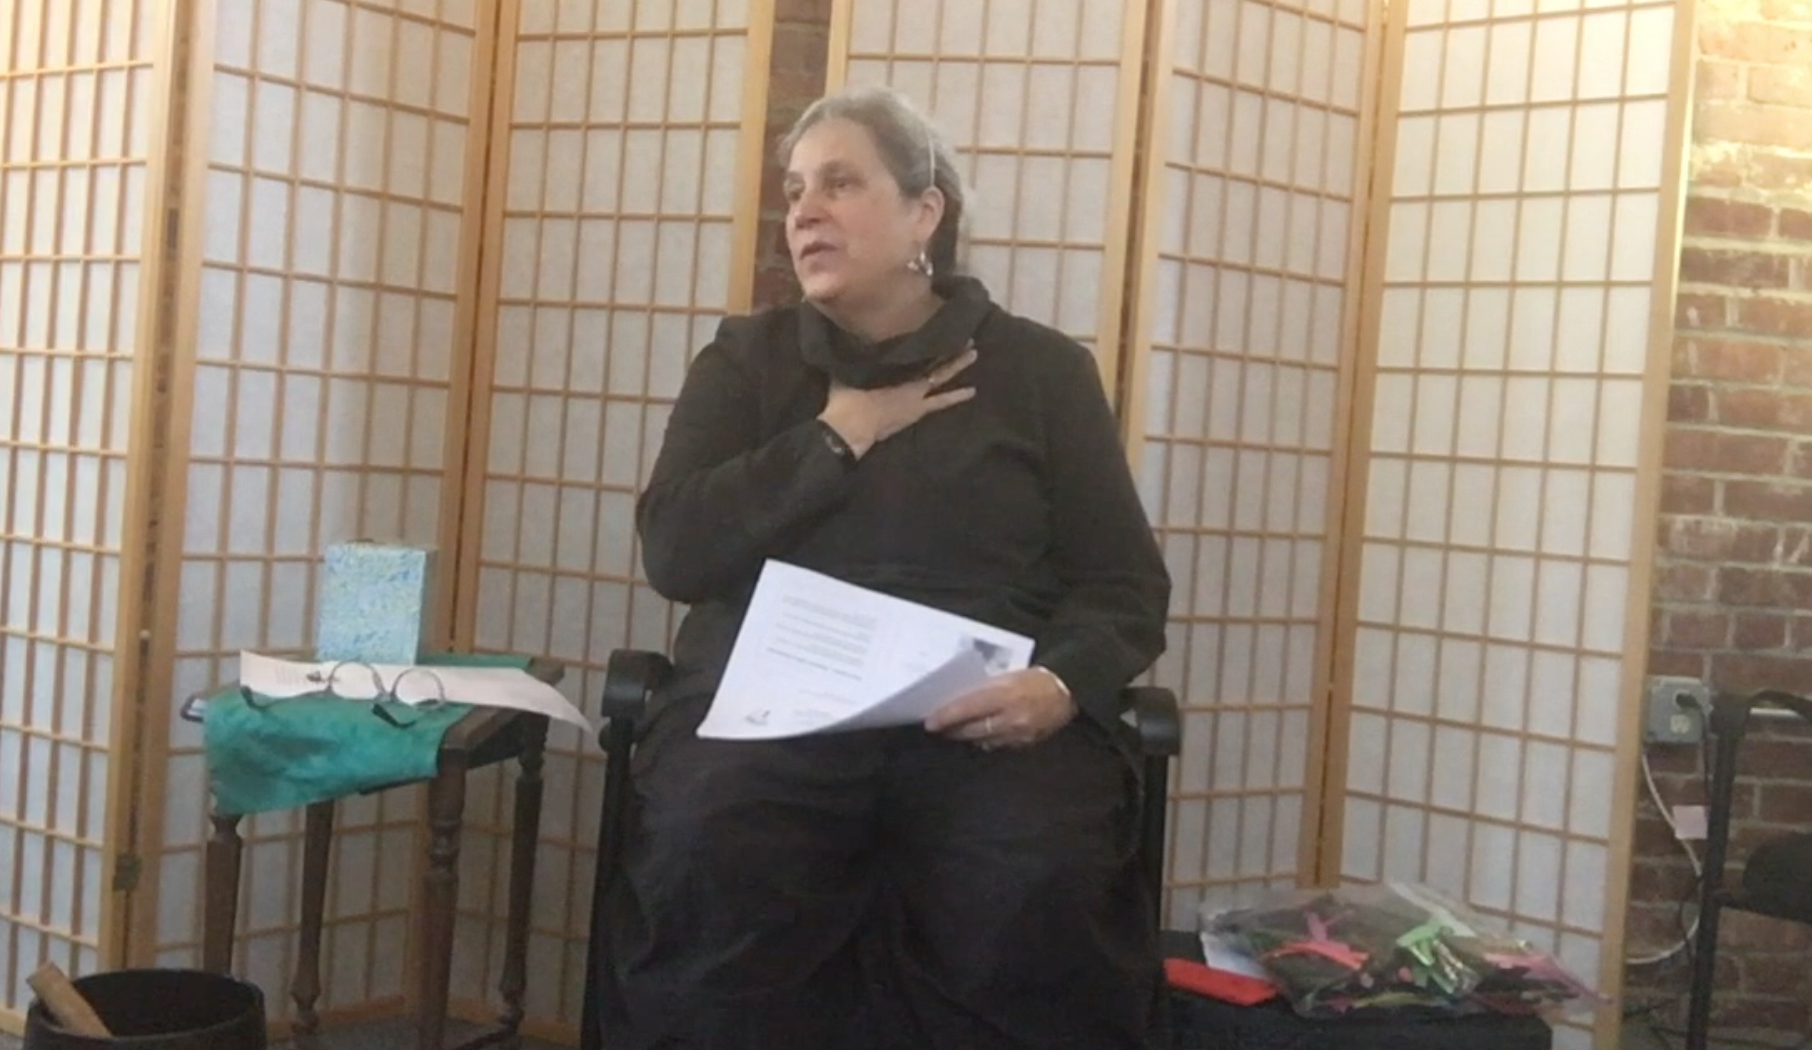 Windhorse Talks: Deb Dana Presentation And Workshop On Polyvagal Theory